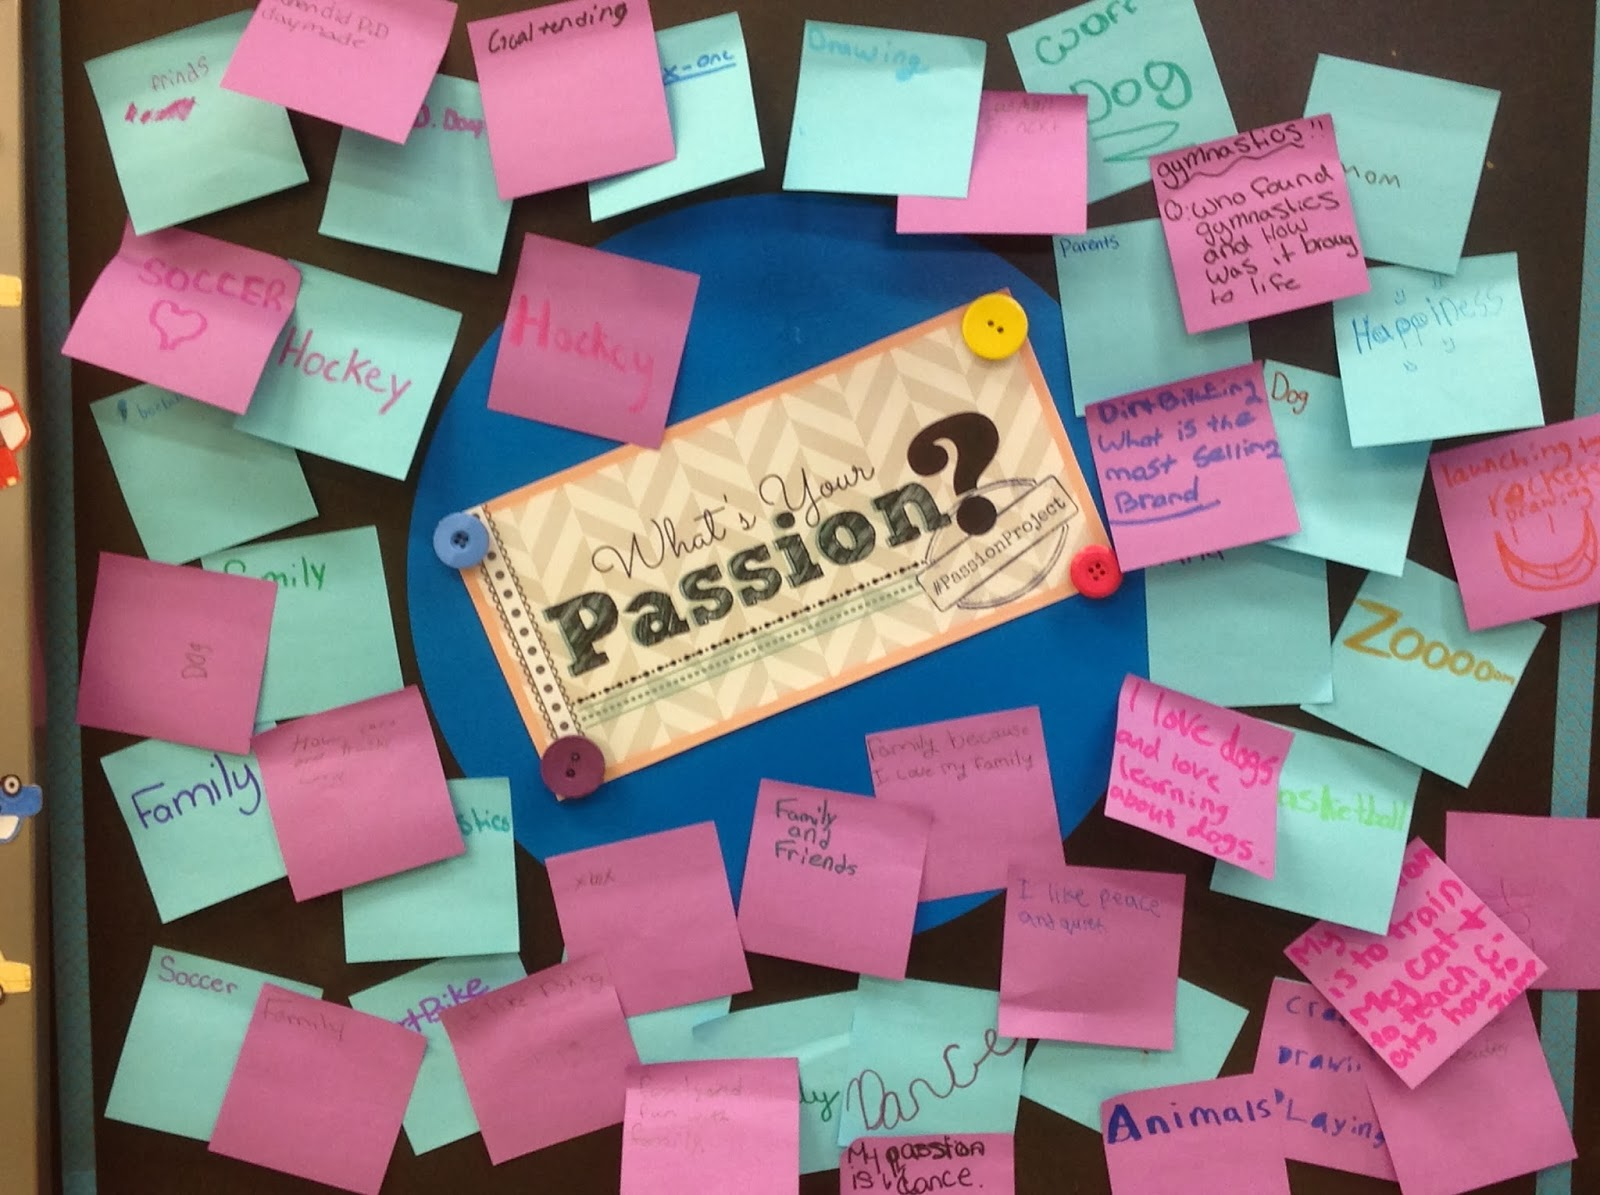 Runde S Room Passion Projects In The Classroom